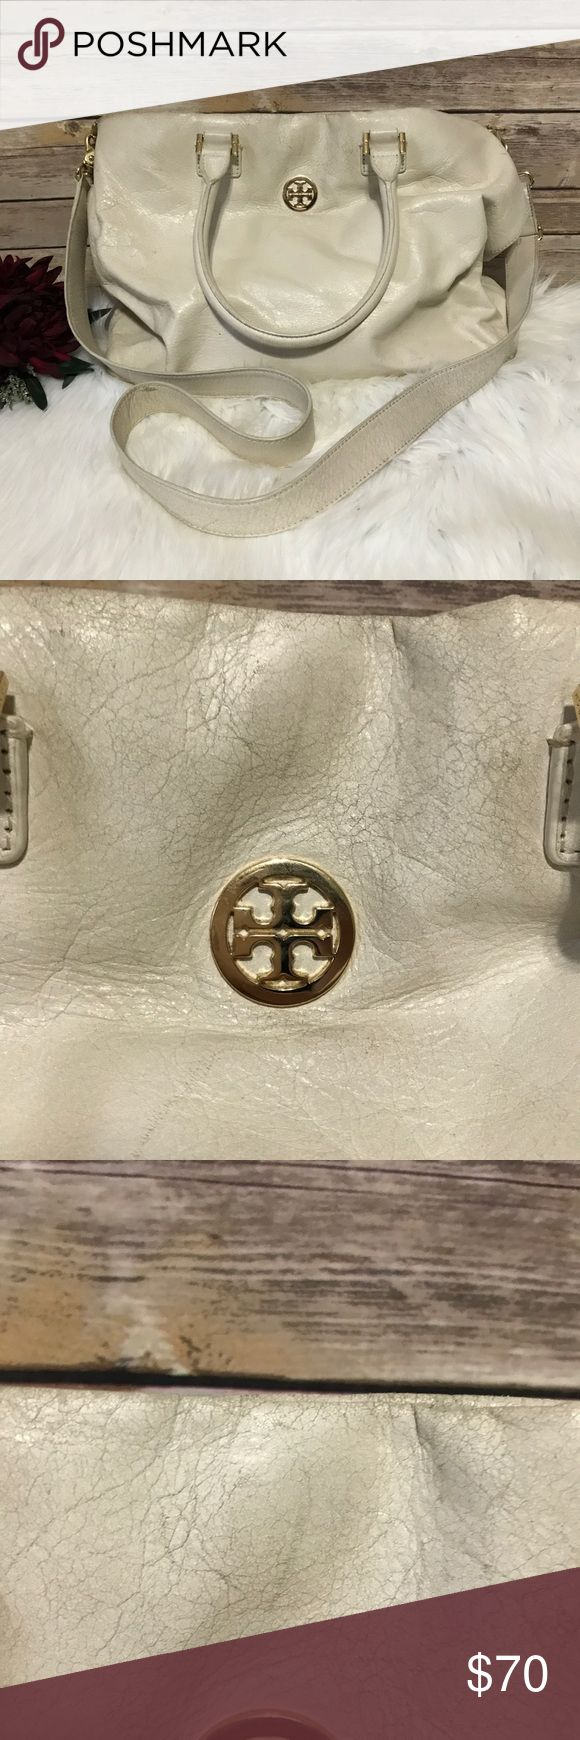 """Tory Butch Ivory Soft Leather Crossbody Purse In Good Used Condition. This bag shows signs of wear due to the thin, soft leather. It's a """"Crinkly"""" leather. Color transferred from my pants when wearing the purse on my hip. Adjustable strap. Magnetic snap closure. Interior in good condition. No holes, some light stains from normal use. Has zipper pocket and 2 slip pockets. Ask Questions! ⭐️⭐️⭐️⭐️⭐️ Star Rating 🙋🏻Top 10% Seller 🚫Trades 🚫Paypal 📦Same/Next Day Shipping ✅Bundles ✅Reasonable…"""